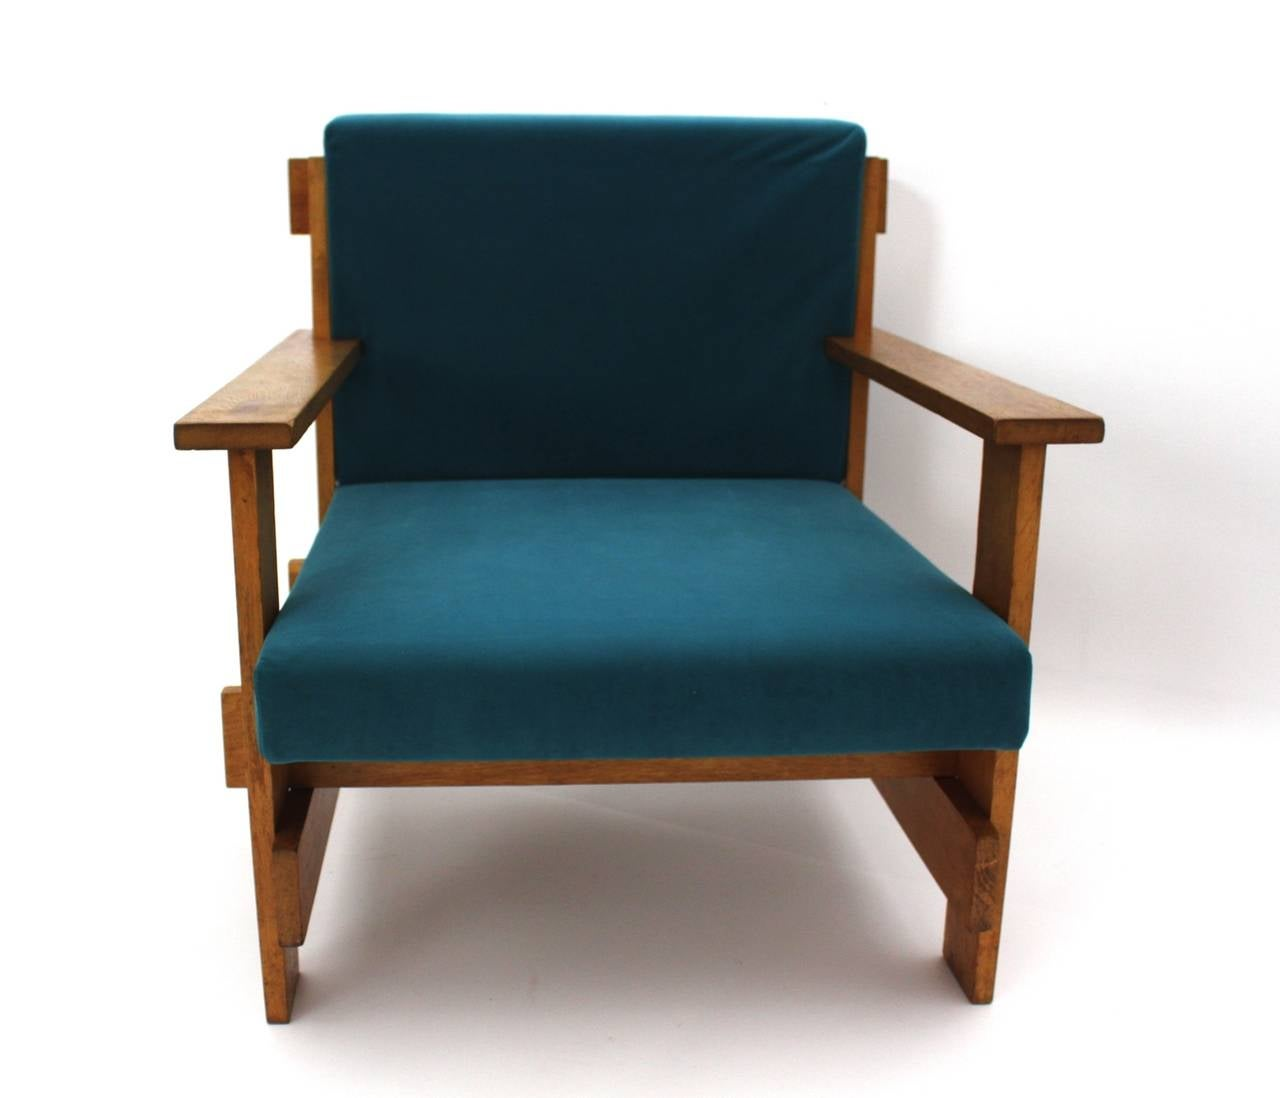 Bauhaus Lounge Chair In The Style Of Josef Albers Germany 1920s At